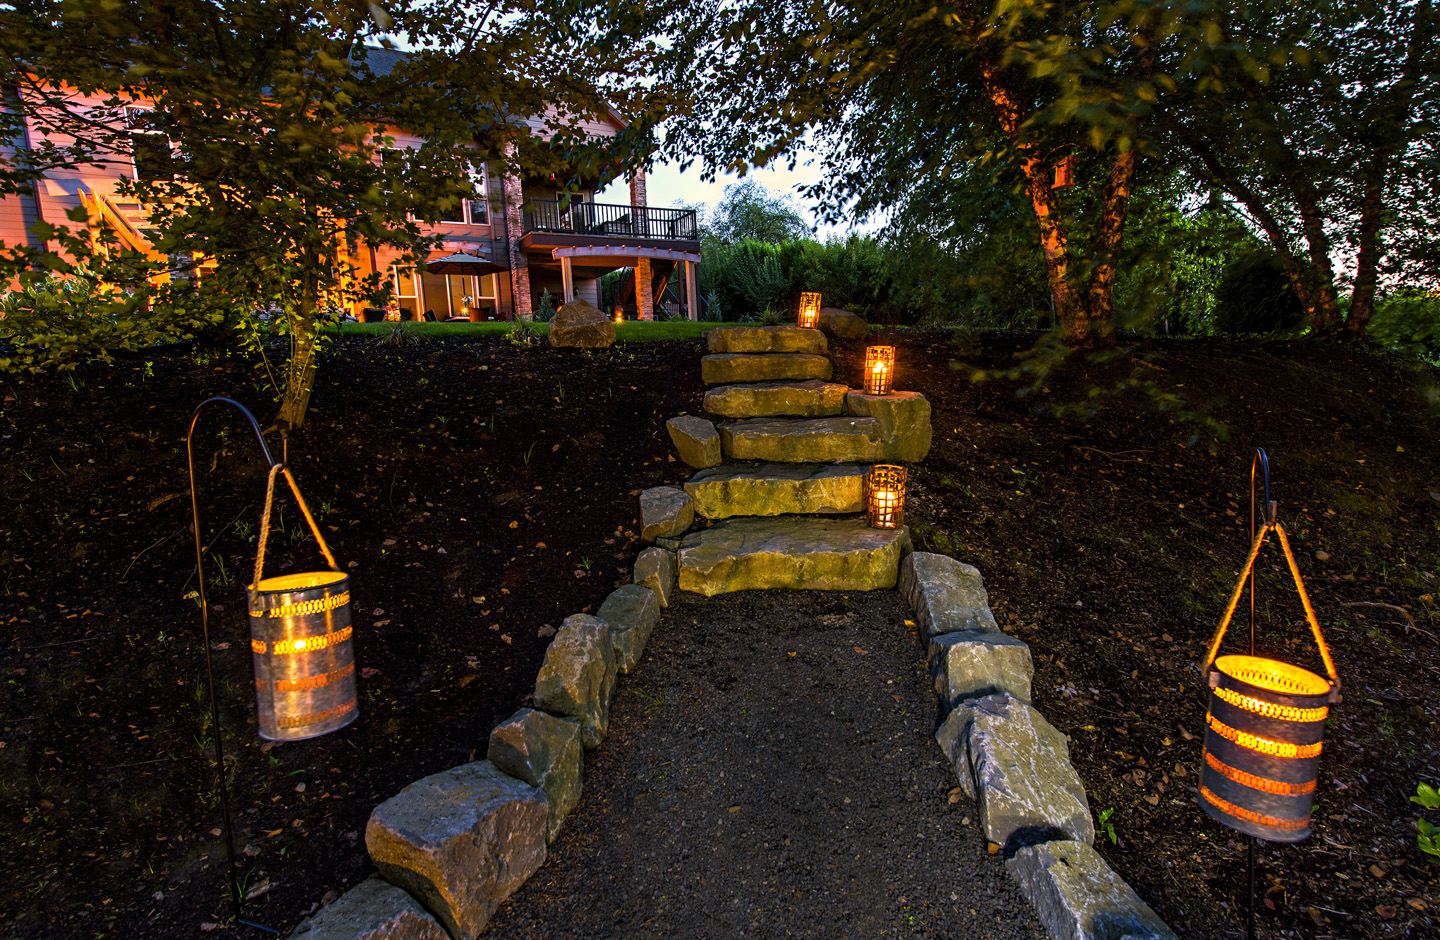 Lanterns in Outdoor Setting